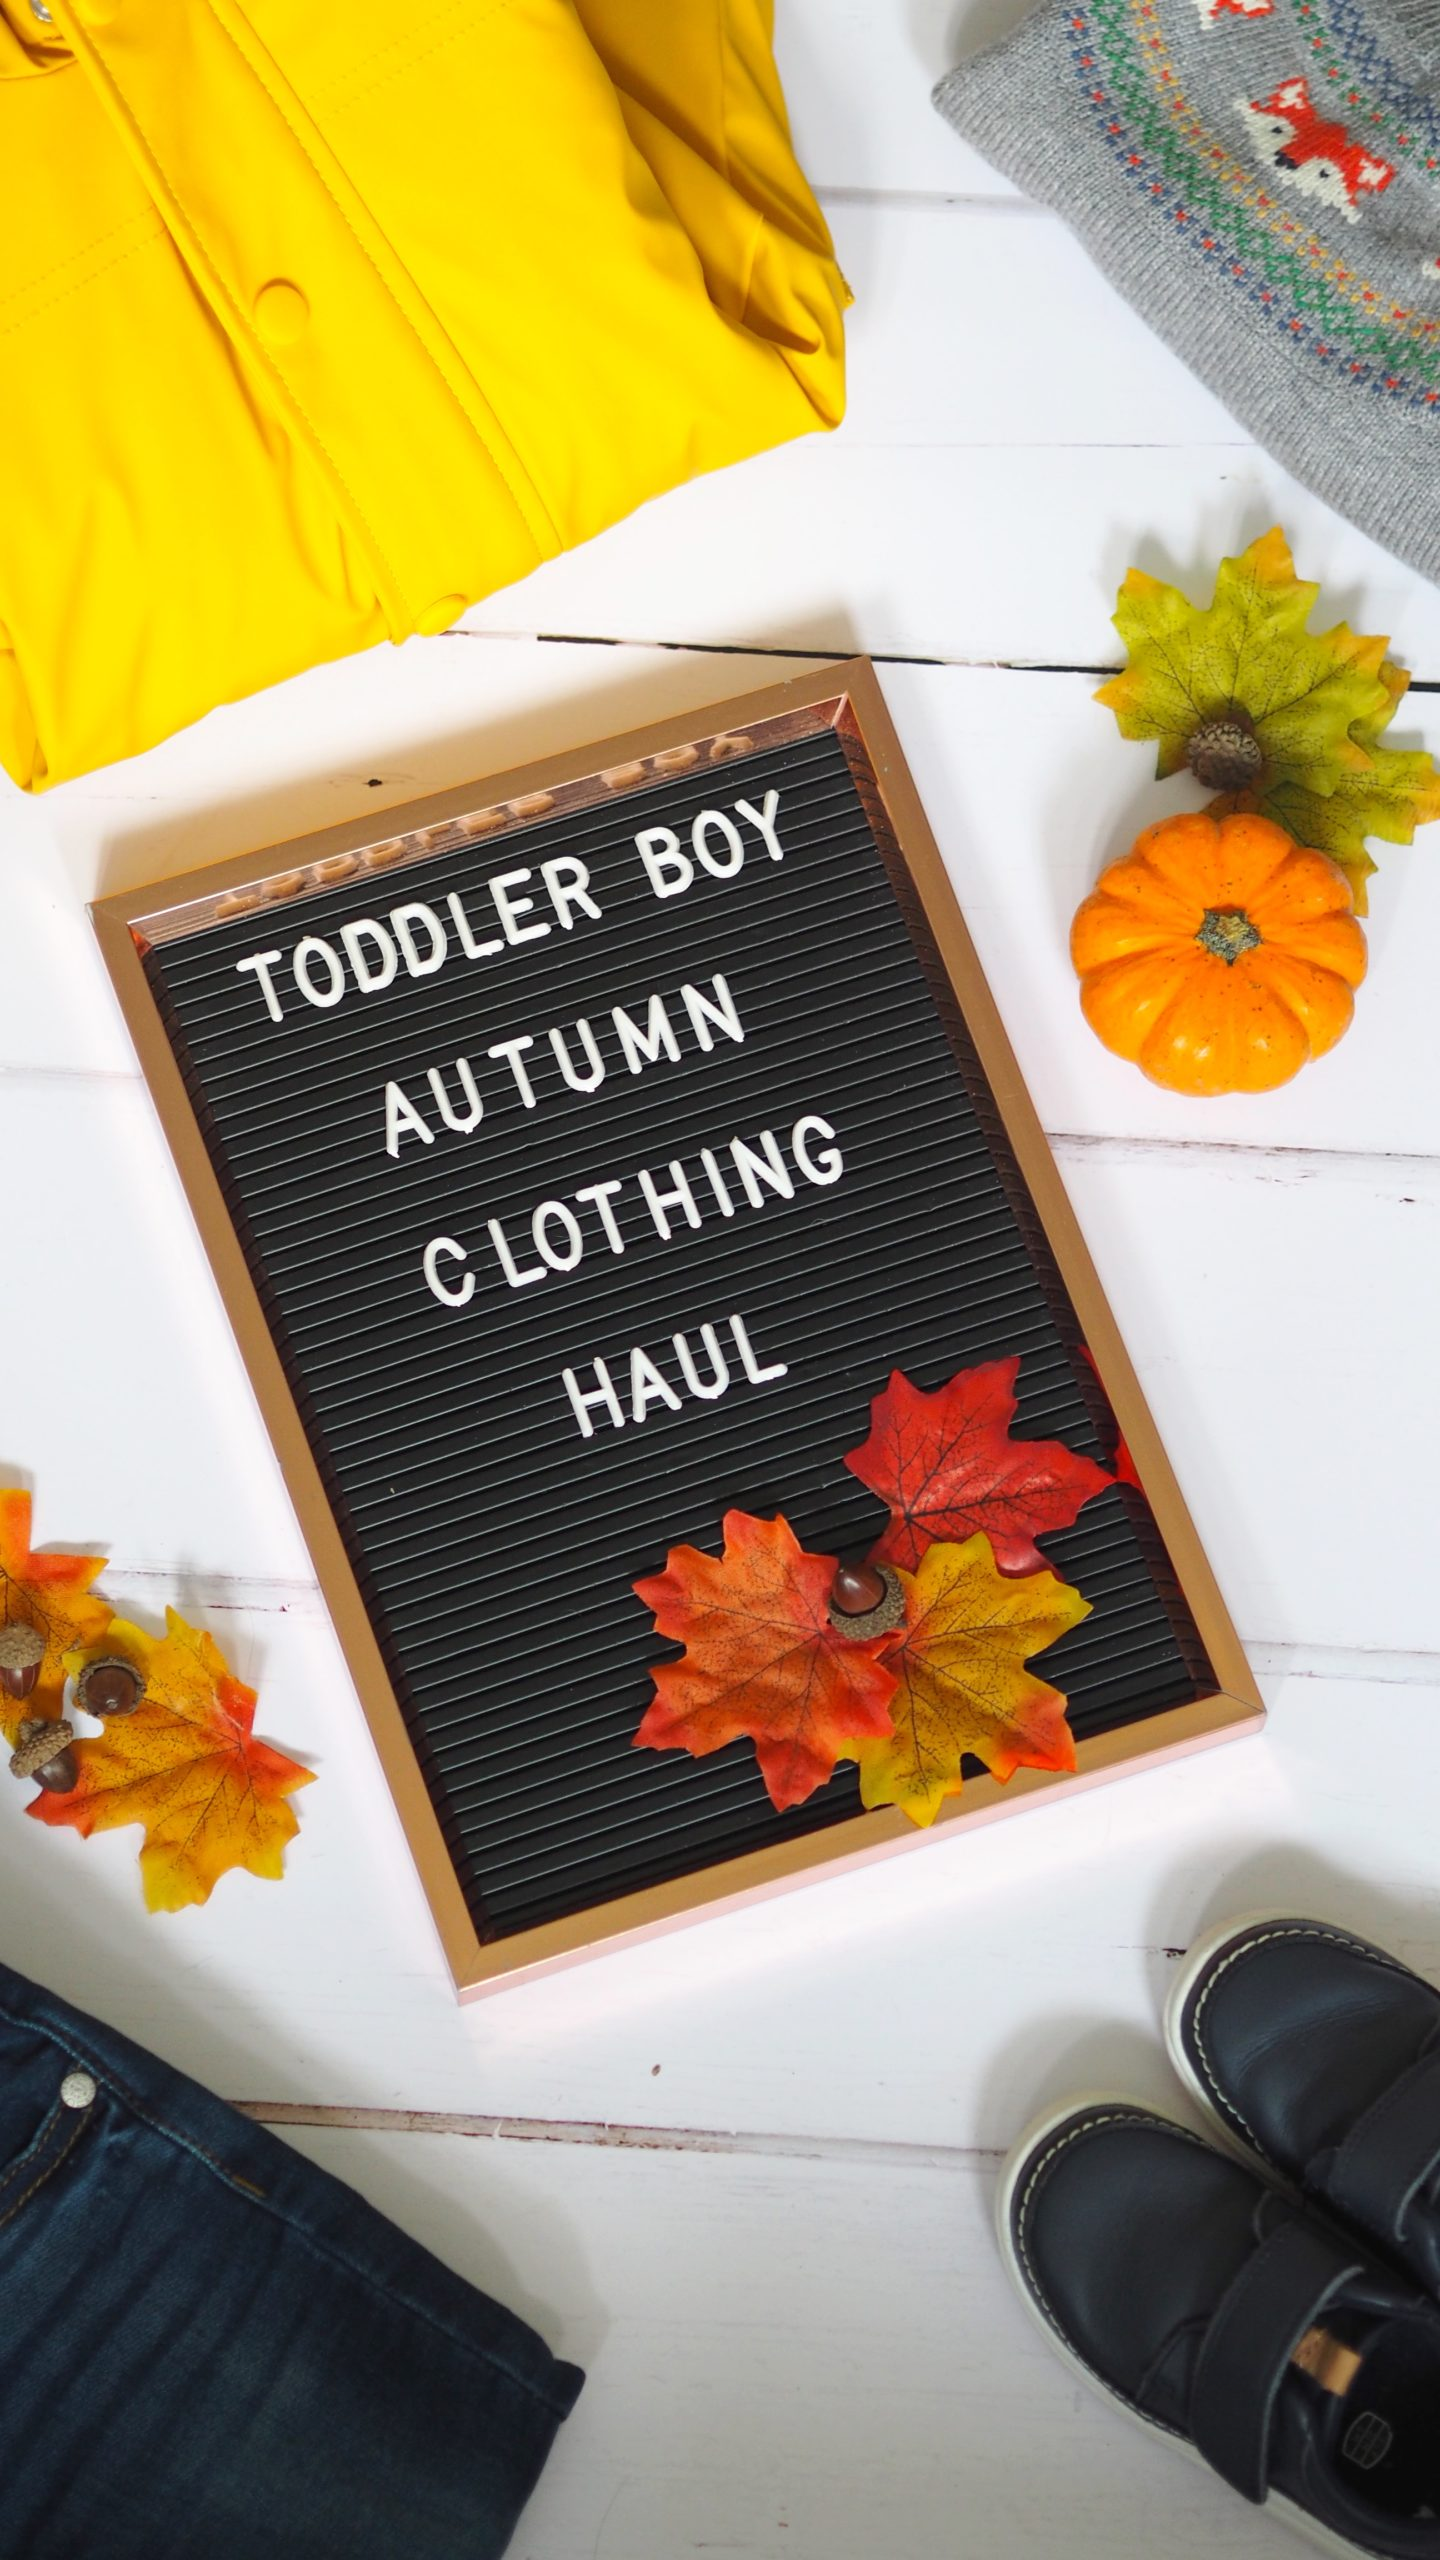 Toddler Boy Autumn Clothing Haul